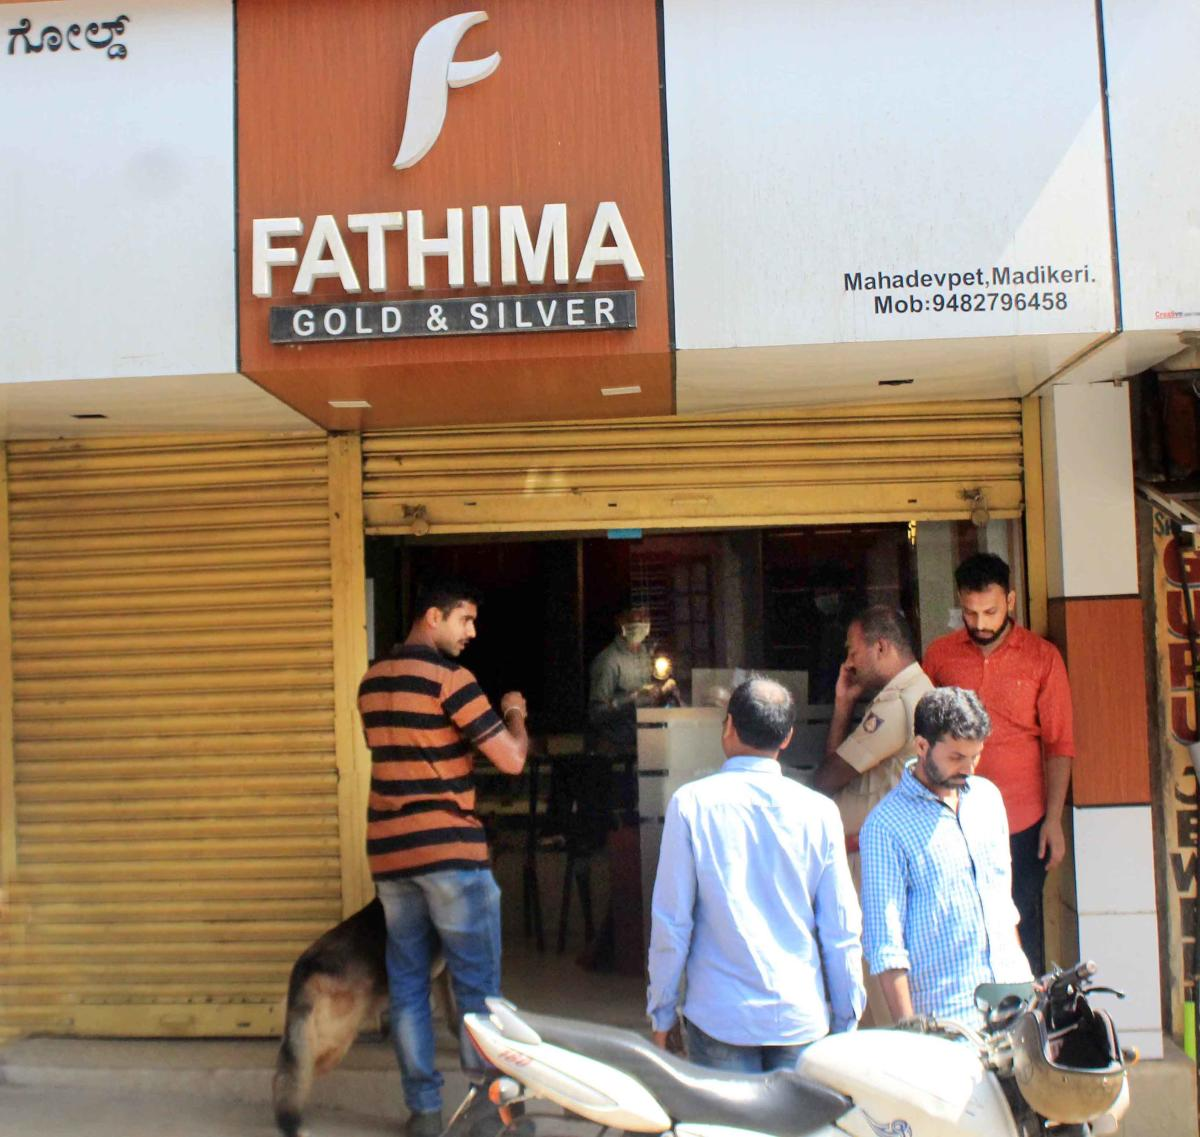 A dog squad and fingerprint experts inspect 'Fathima Gold and Silver' jewellery shop in Madikeri.